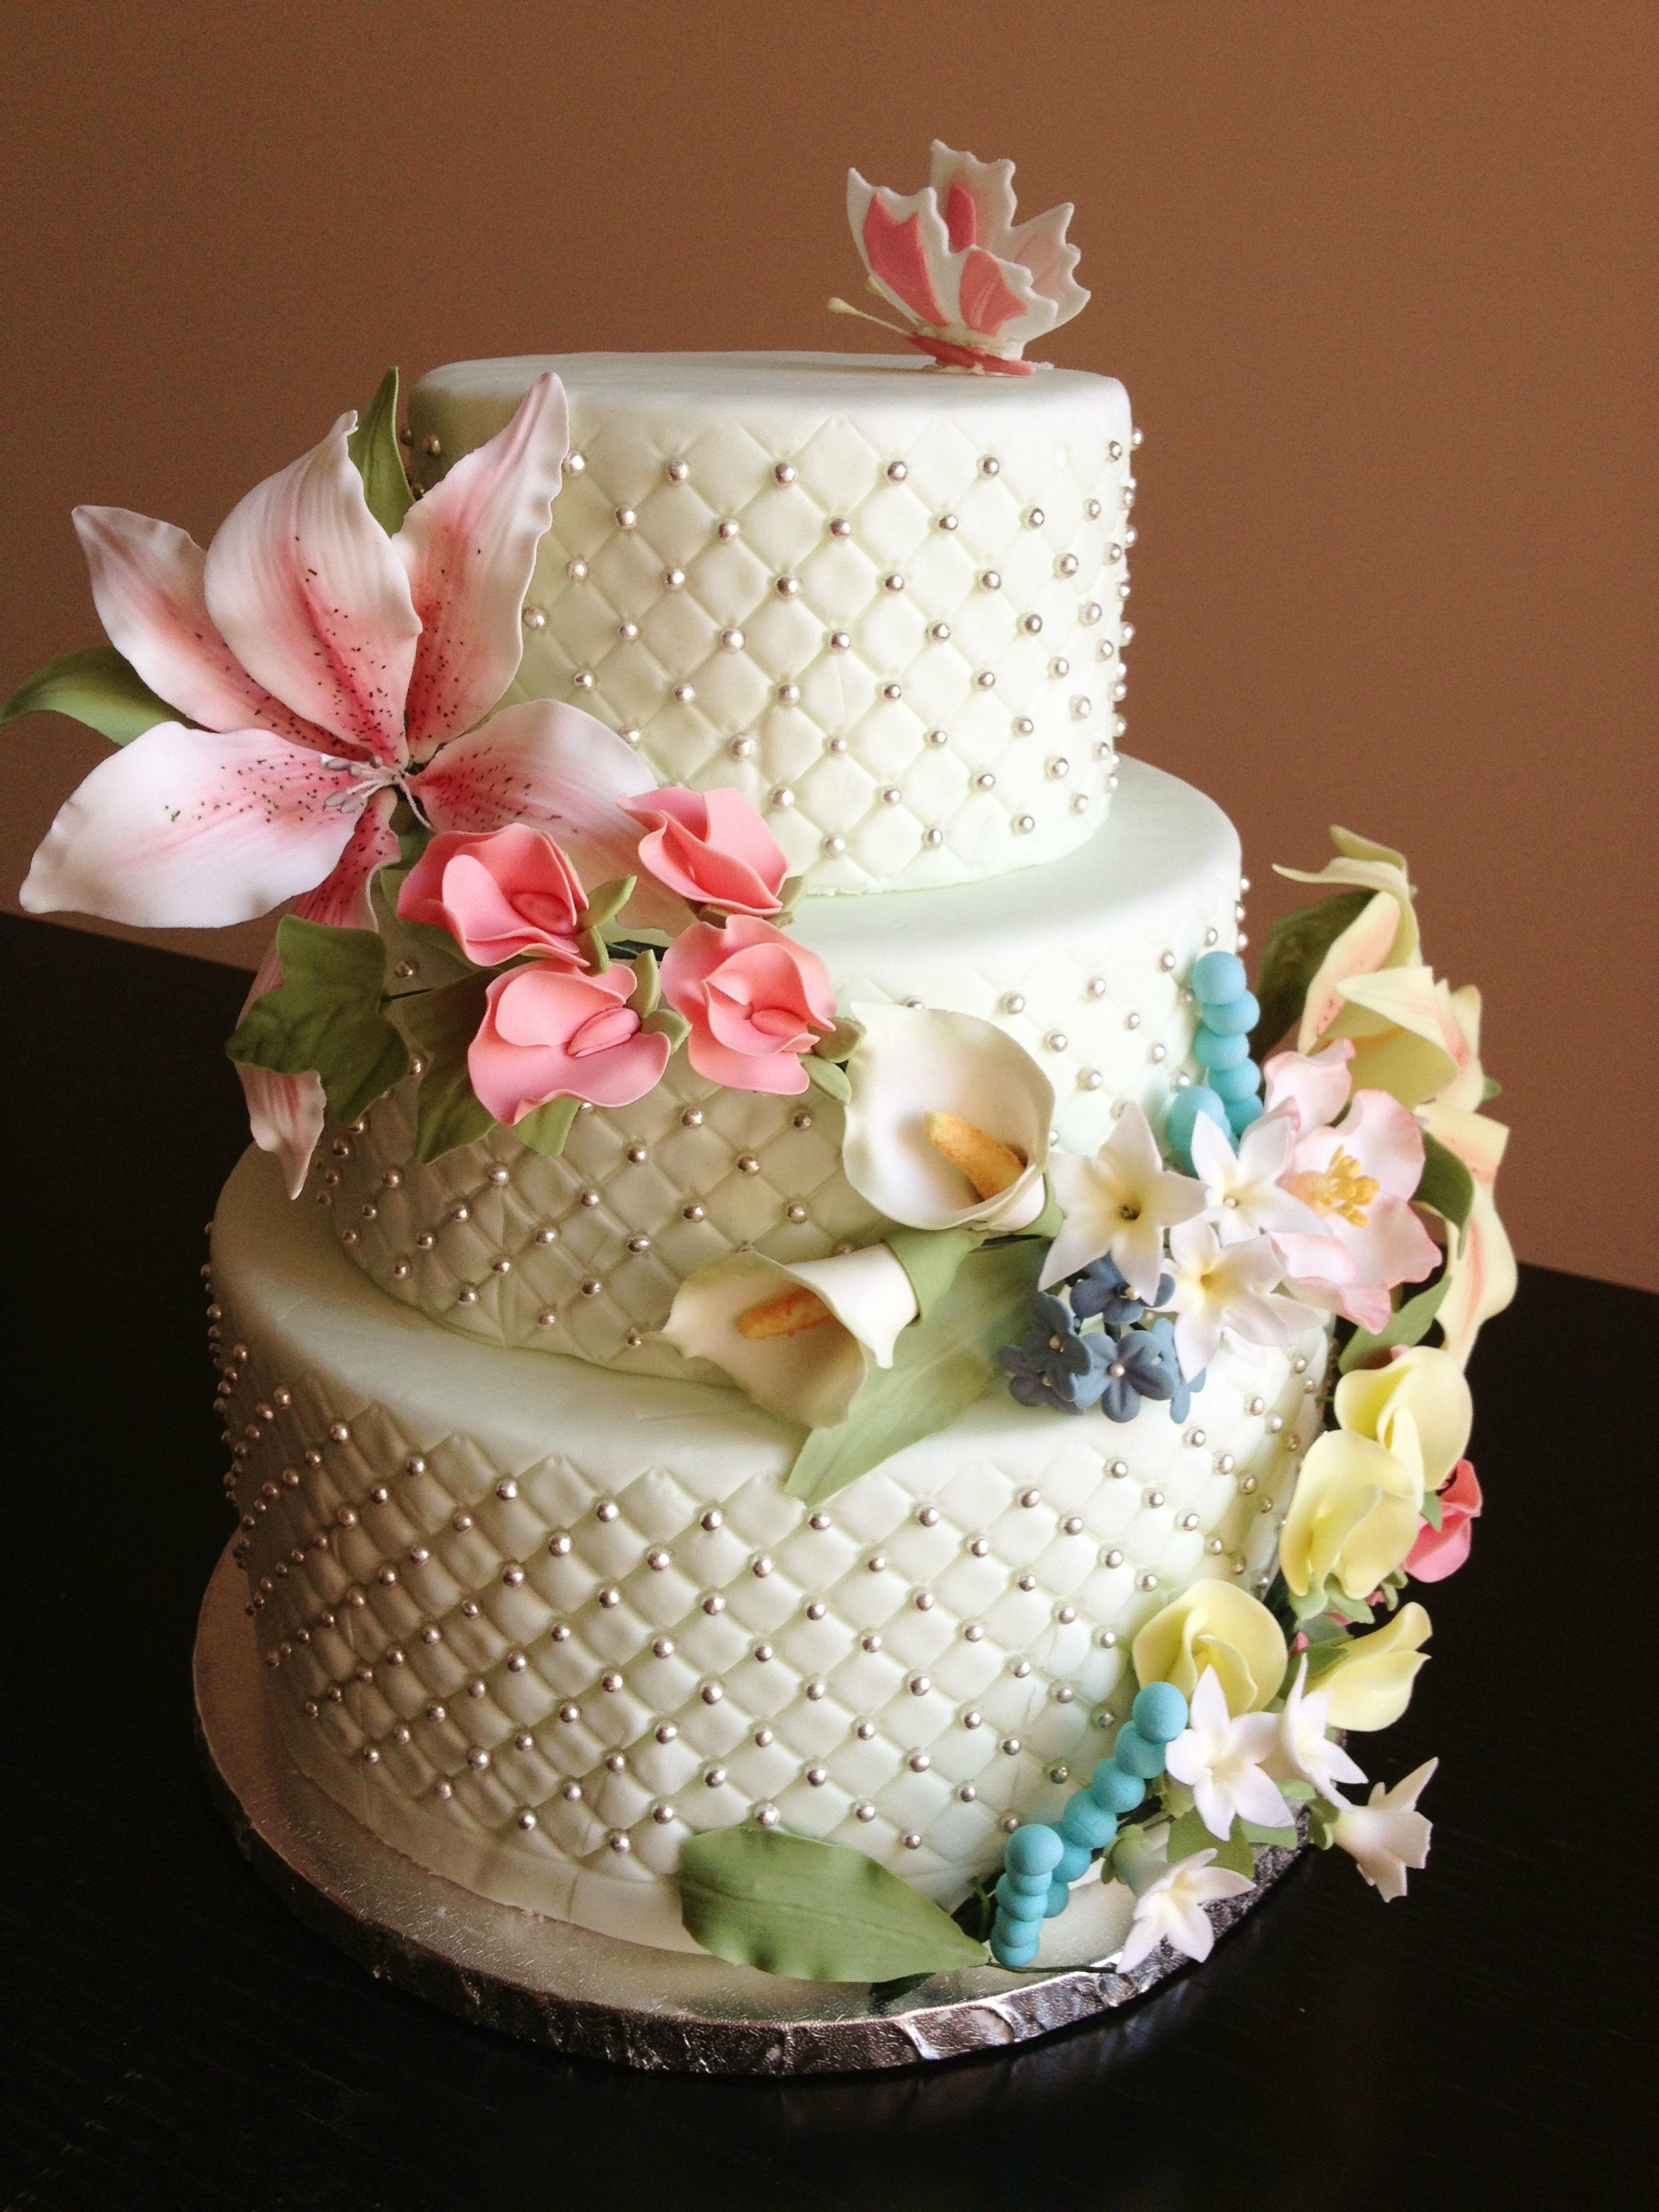 Fondant 3 Tier Cake With Gum Paste Flowers Stargazer Lily